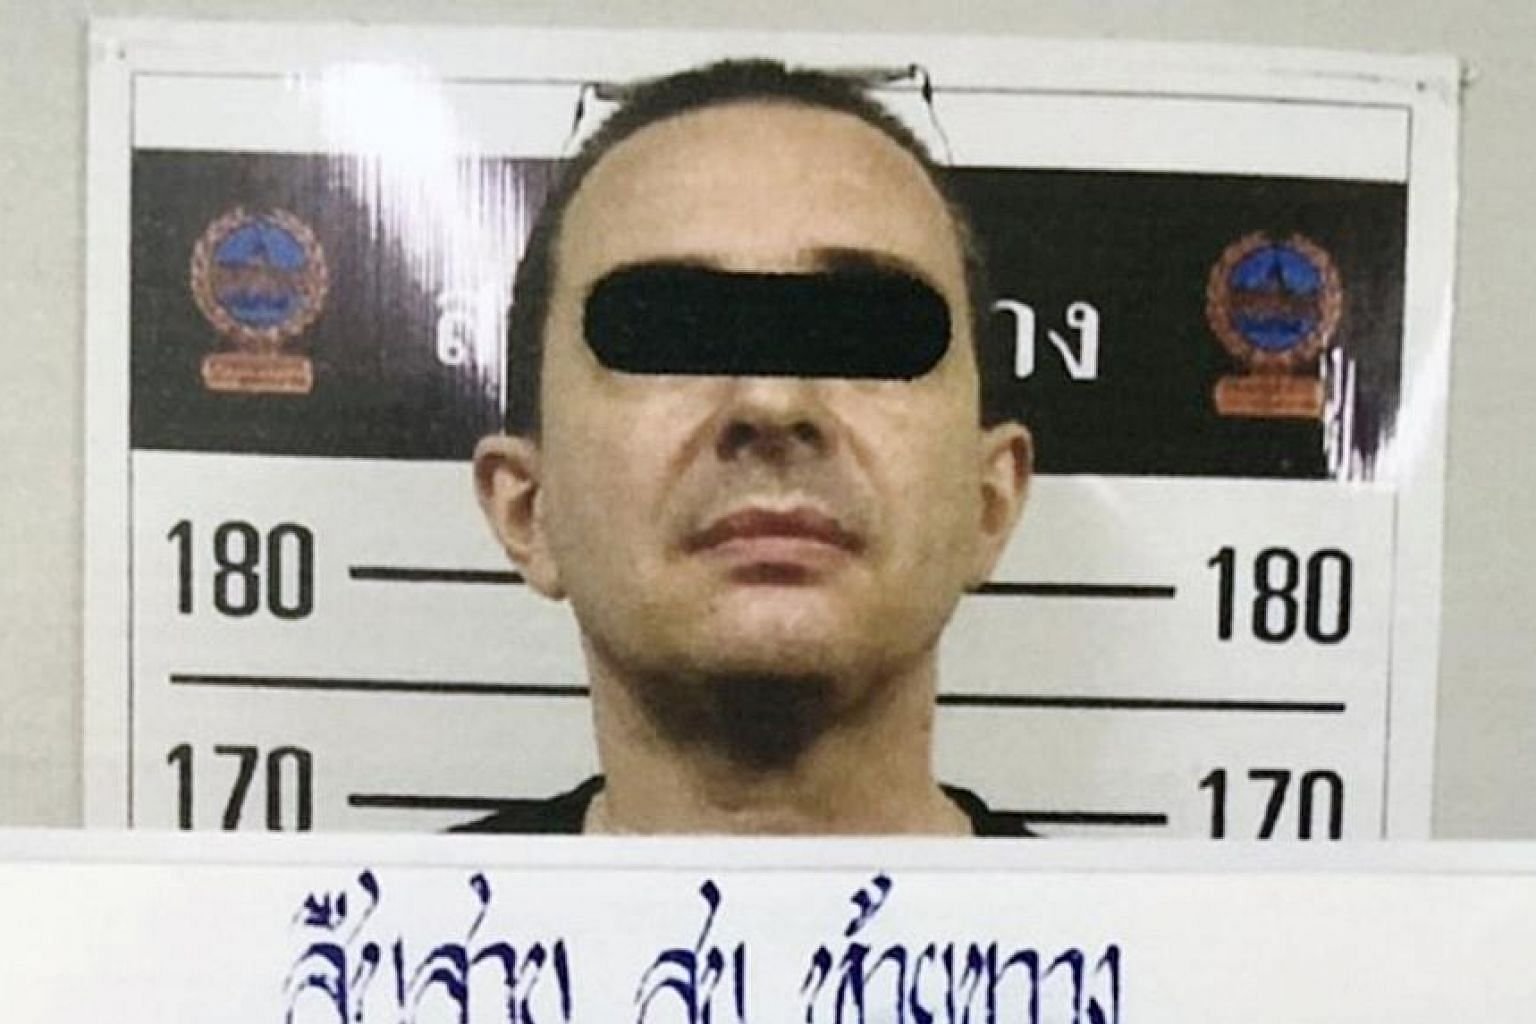 Jean-Christophe Quenot, 51, was held for allegedly having sex with boys.